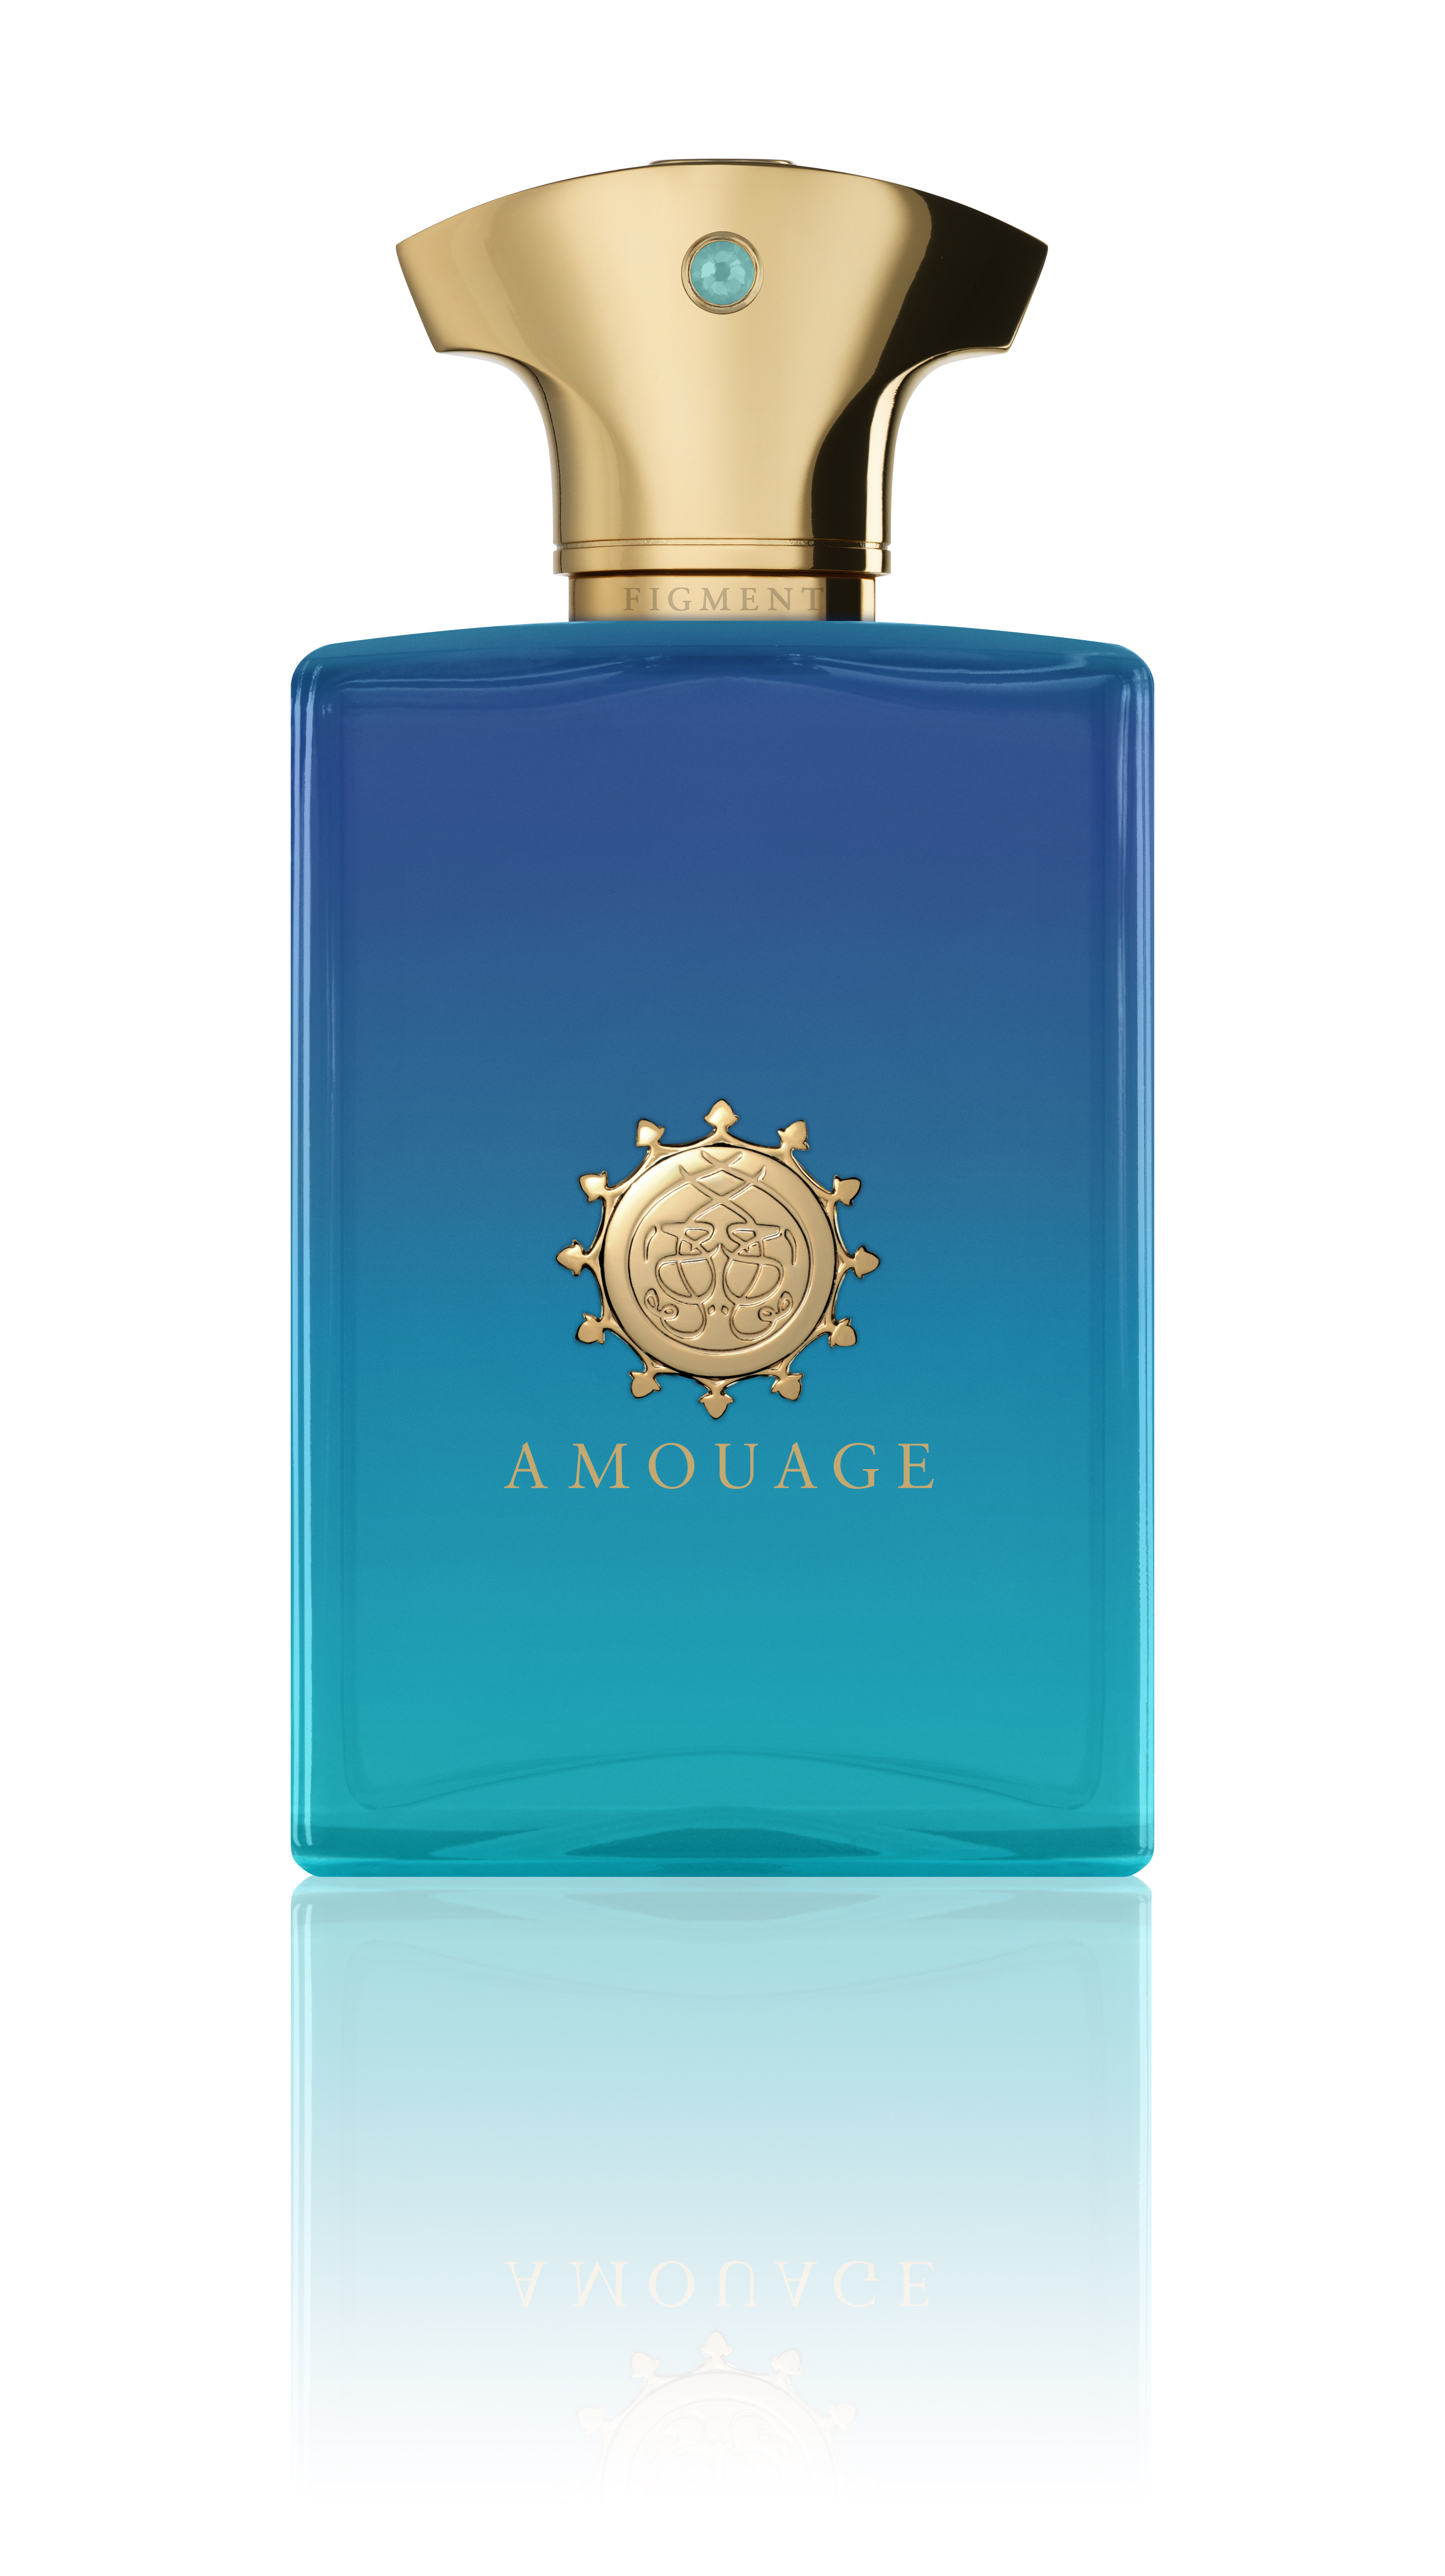 Categories: Beauty-Fragrance - AMOUAGE from WORLD Beauty